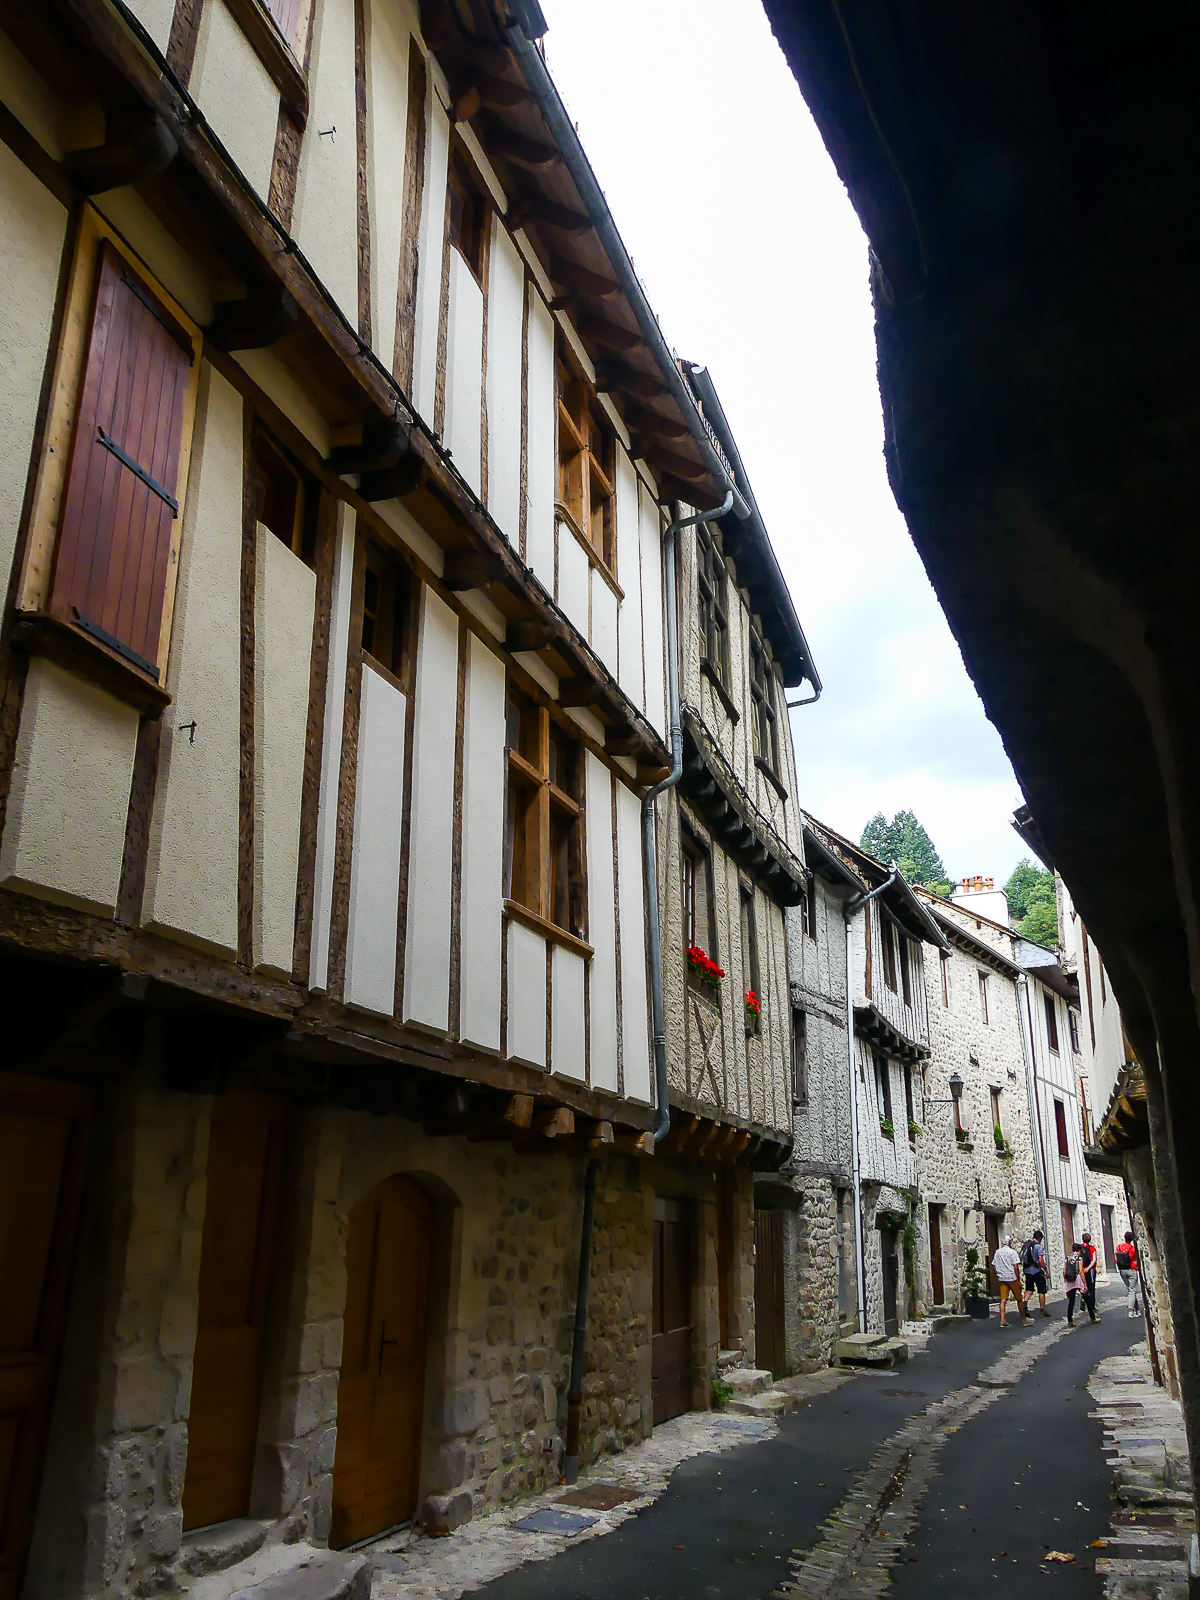 Aveyron-Entraygues-sur-Truyere